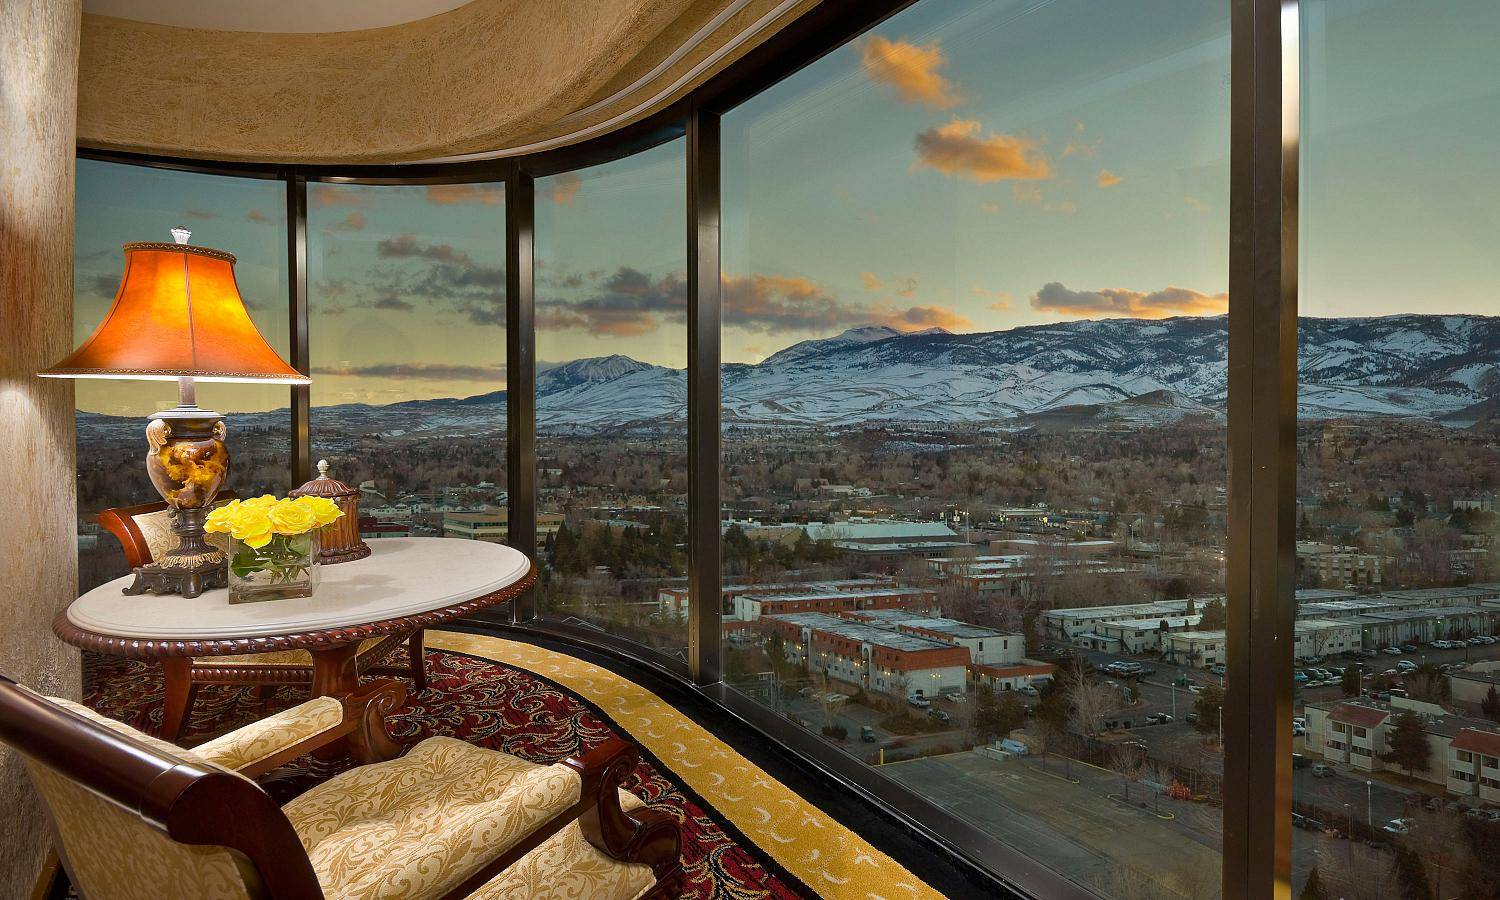 7 Best Casinos For Outdoor Adventure Enthusiasts